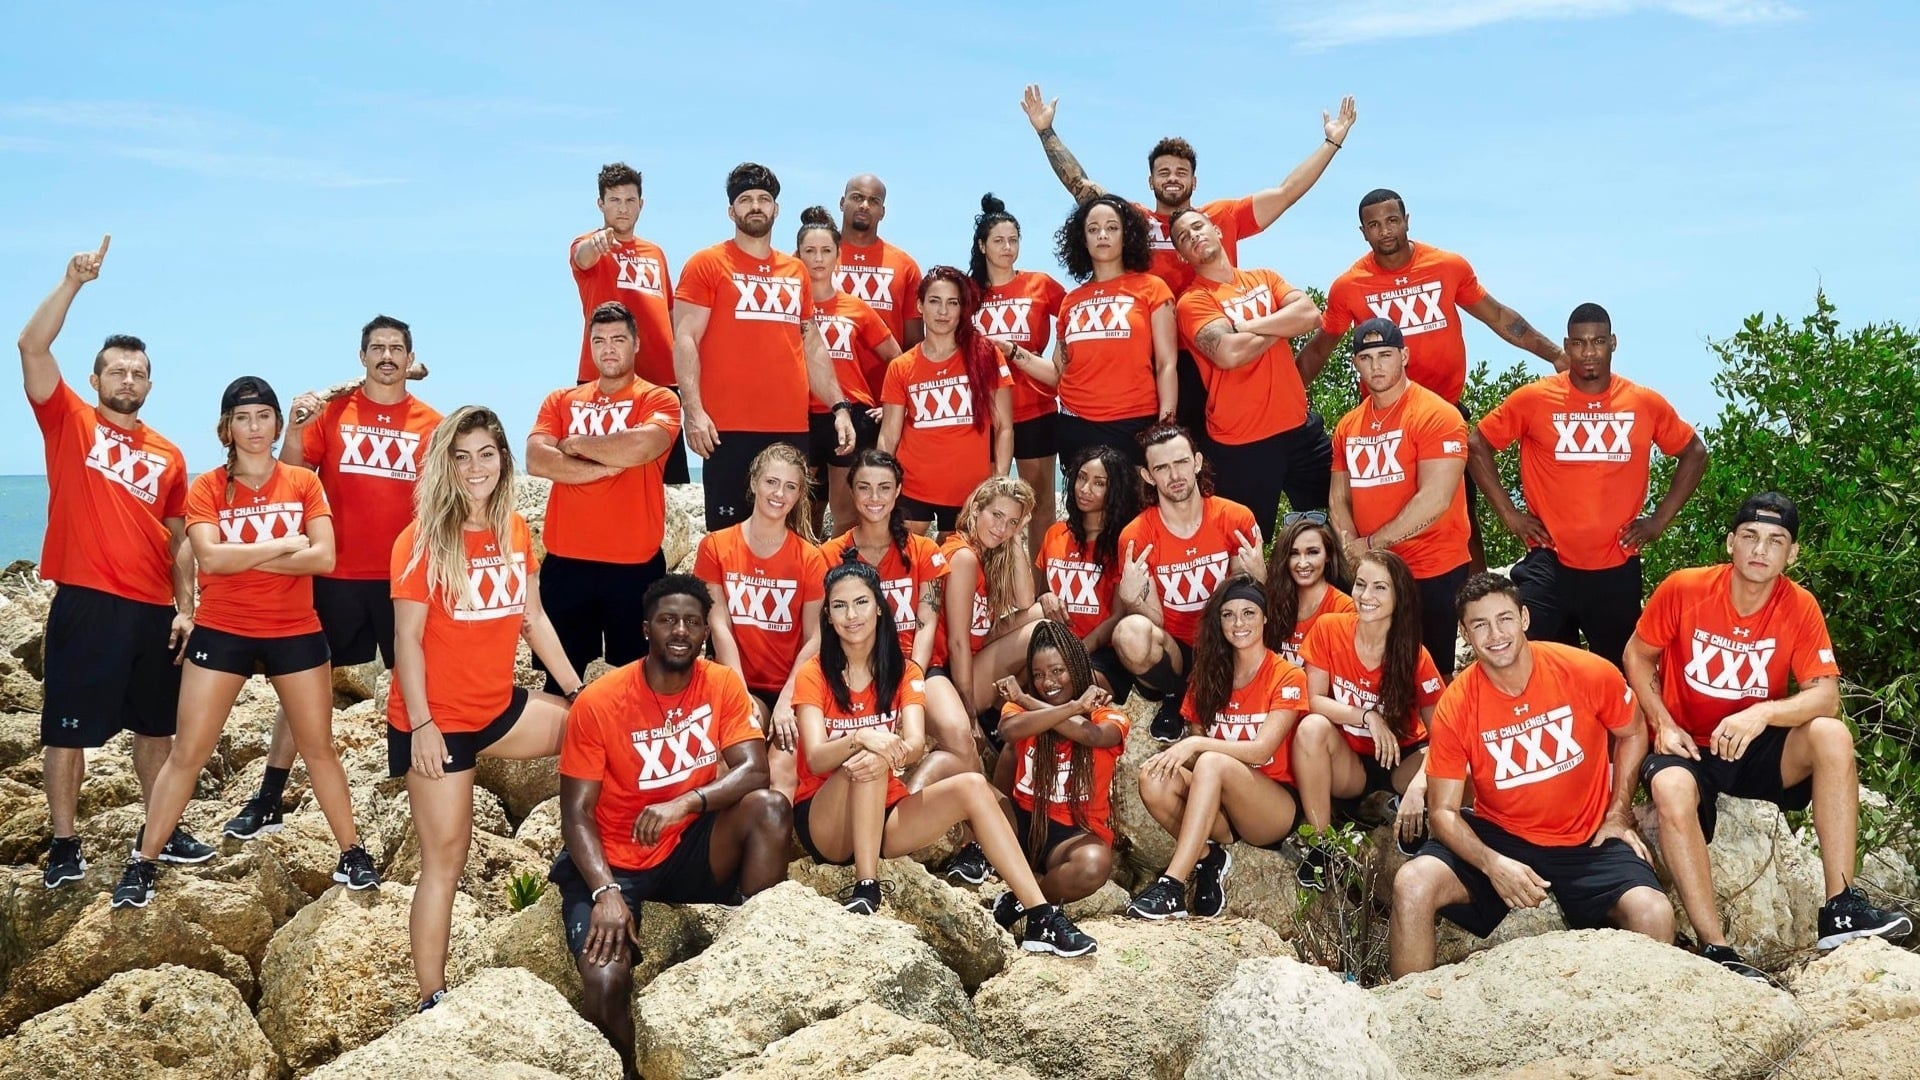 The Challenge Full Series